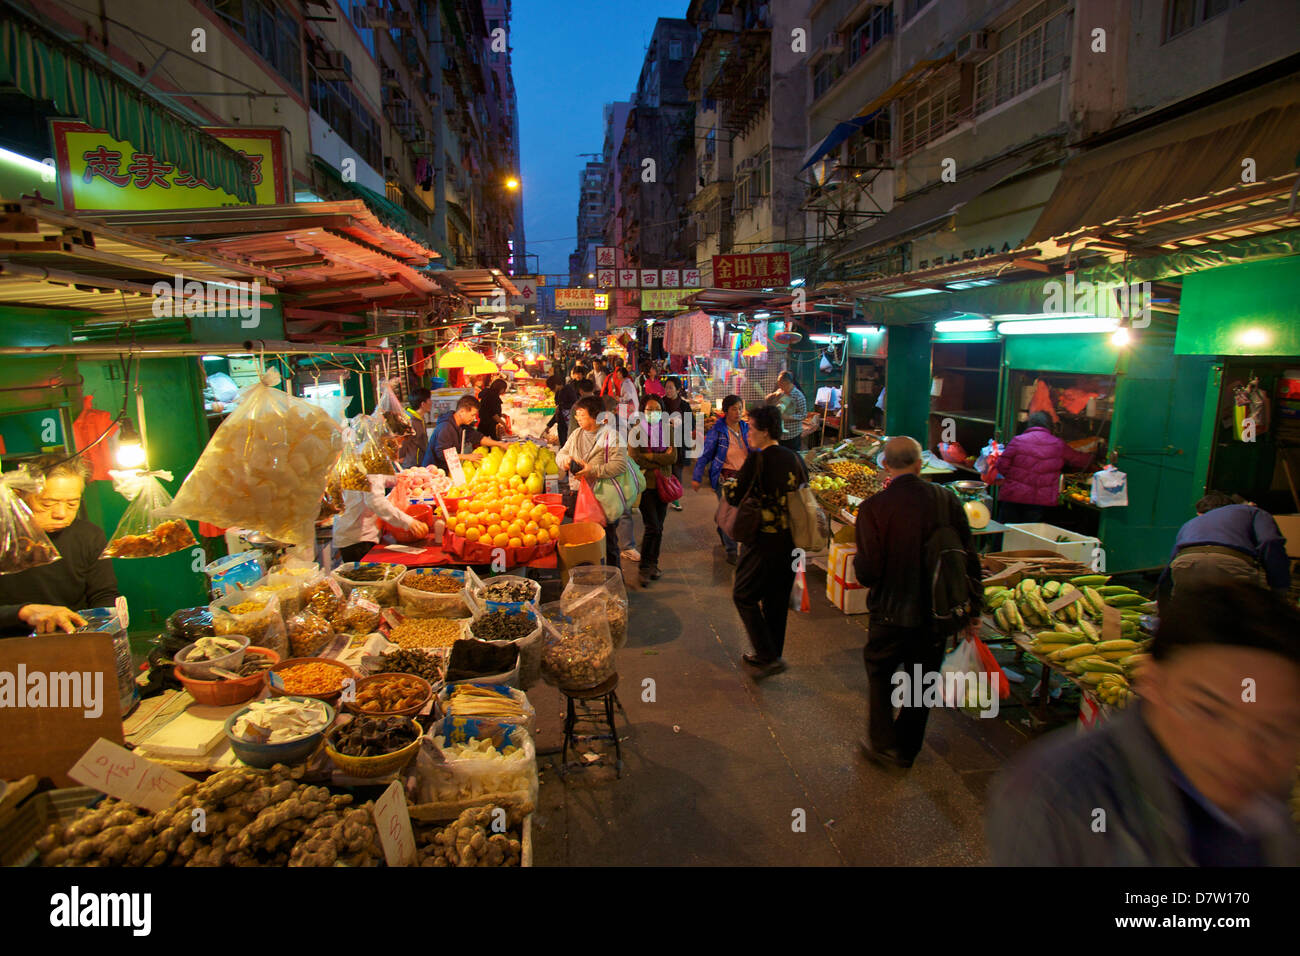 Street Market, Hong Kong, China - Stock Image